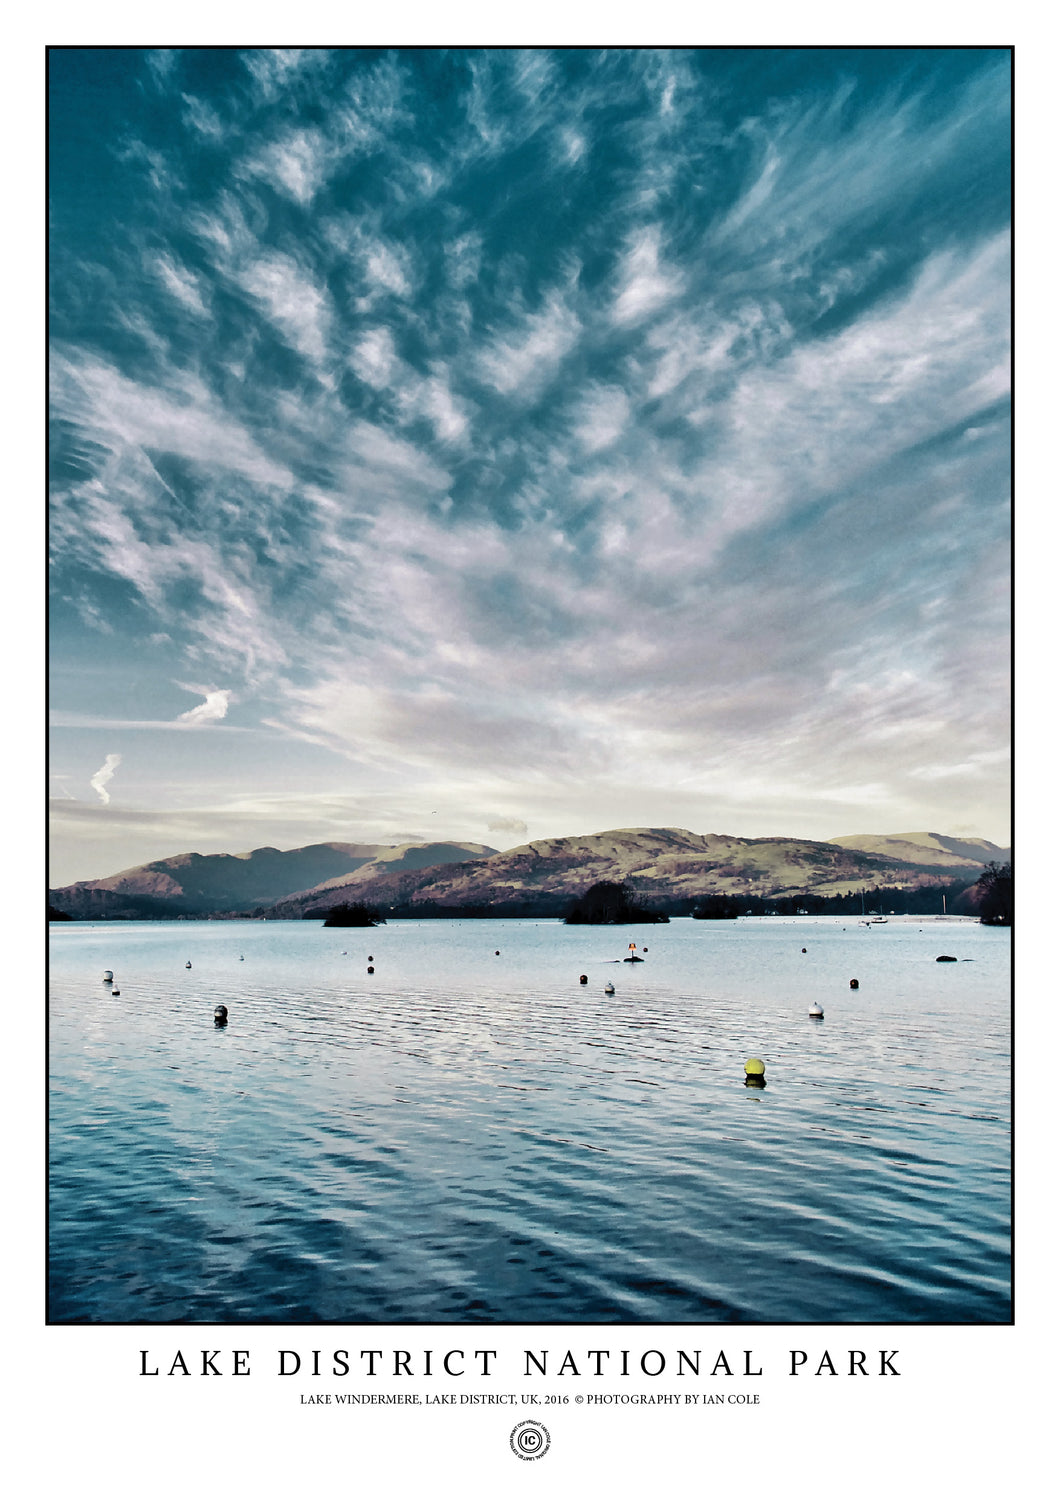 Lake Windermere, Lake District National Park